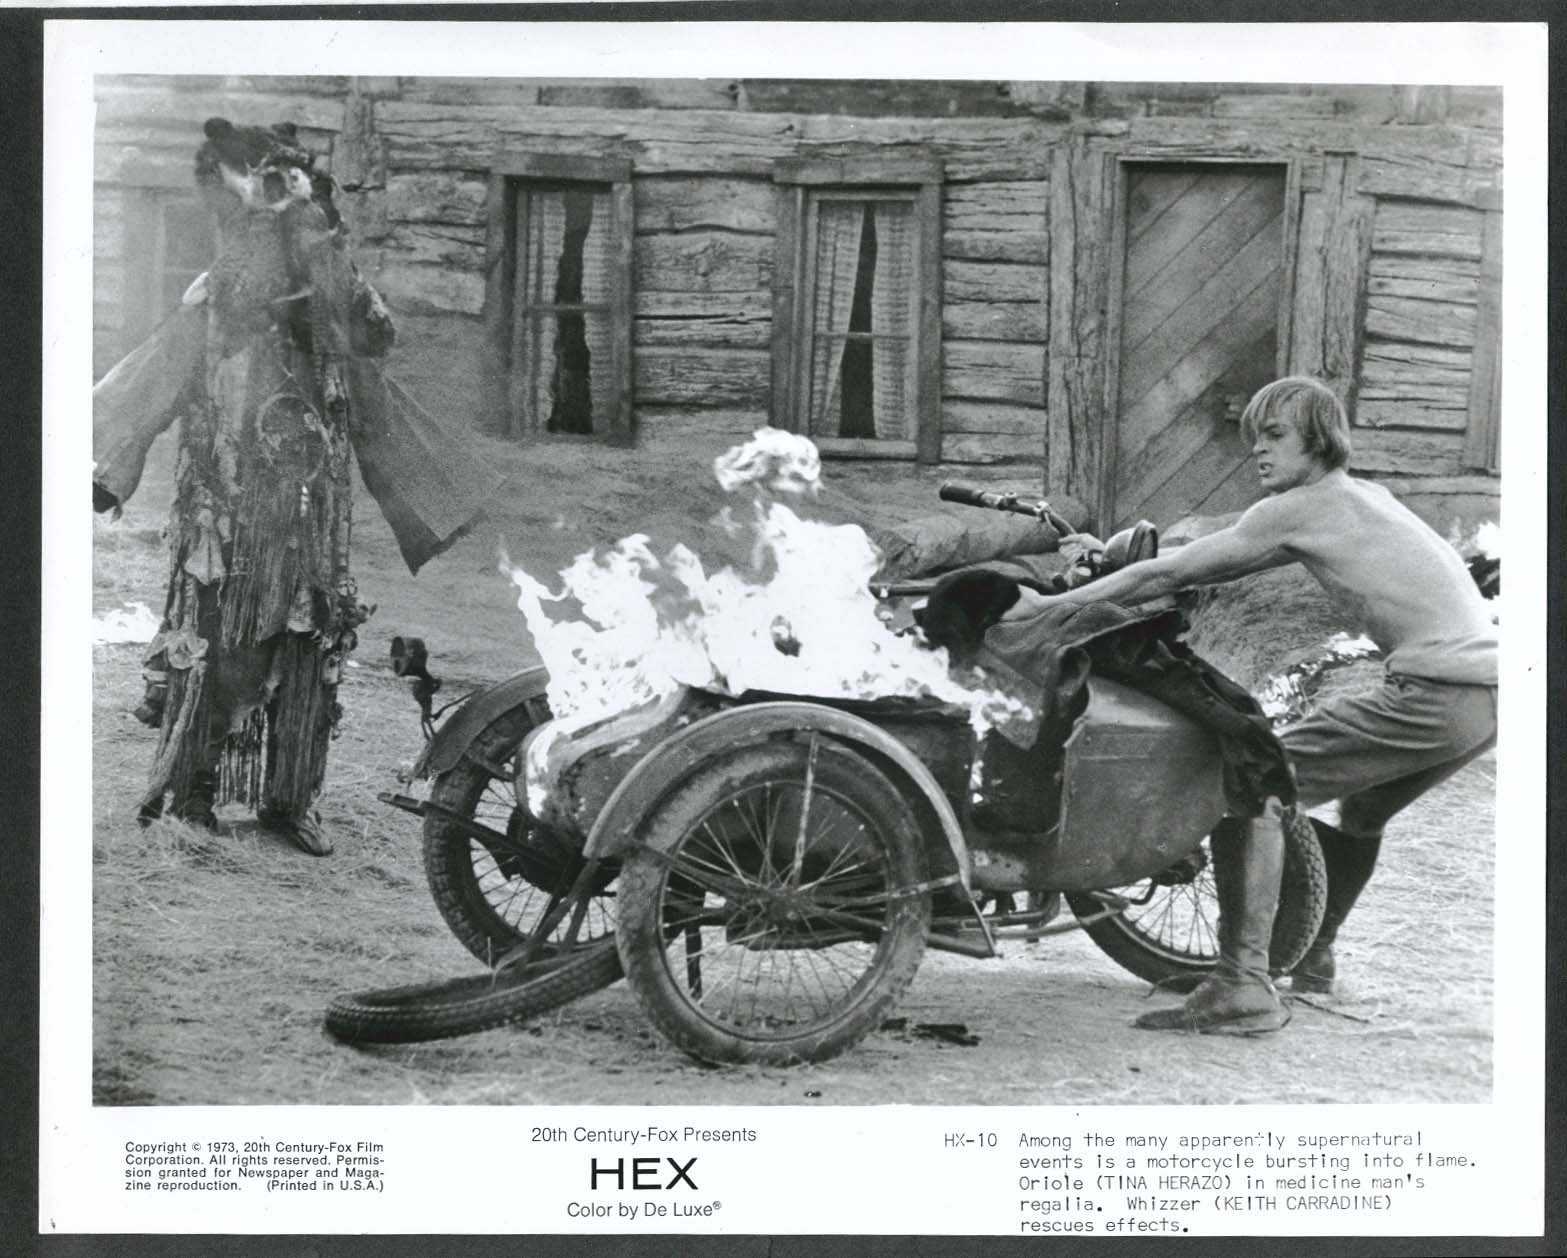 Image for Keith Carradine Hex flaming motorcycle 8x10 photograph 1973